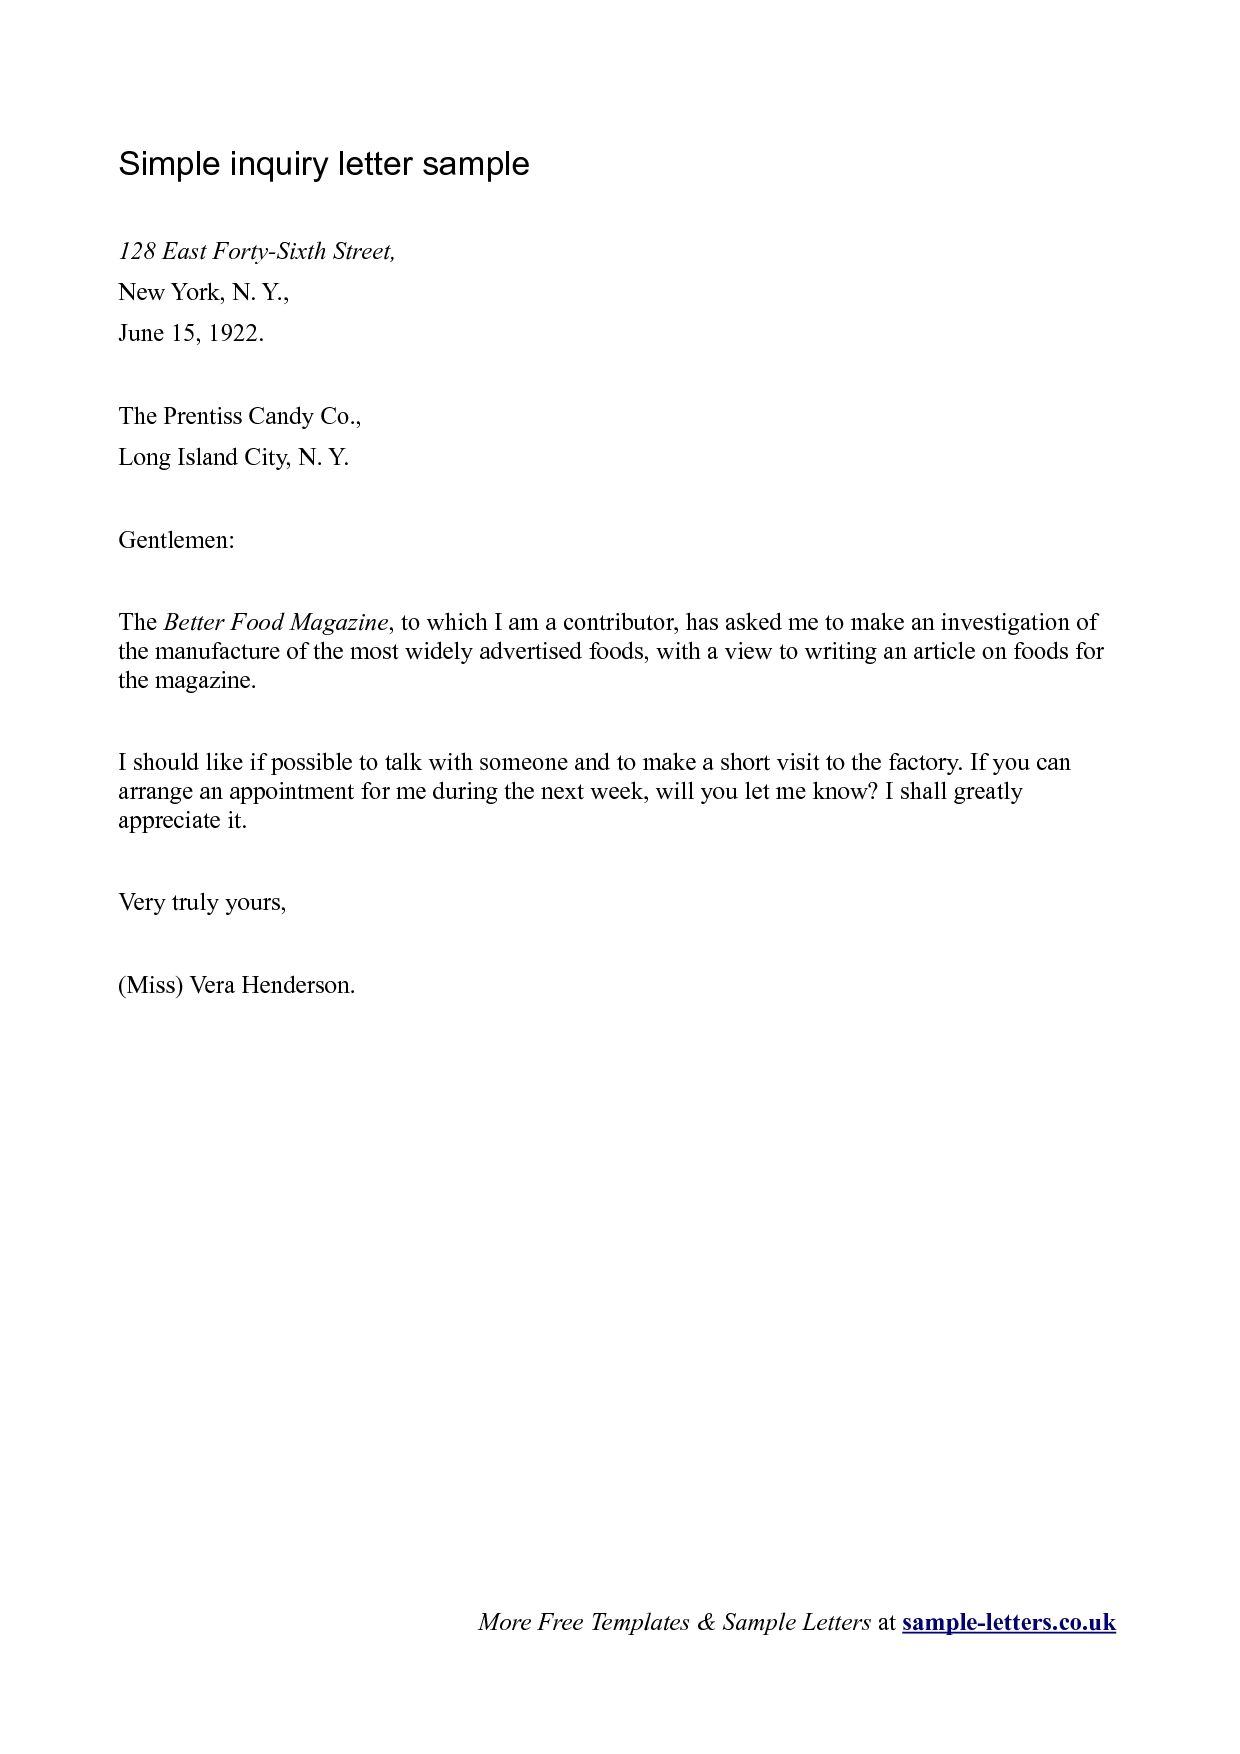 Inquiry Letter For Business Business Letter Of Inquiry Sample The Letter Sample  Reading And .